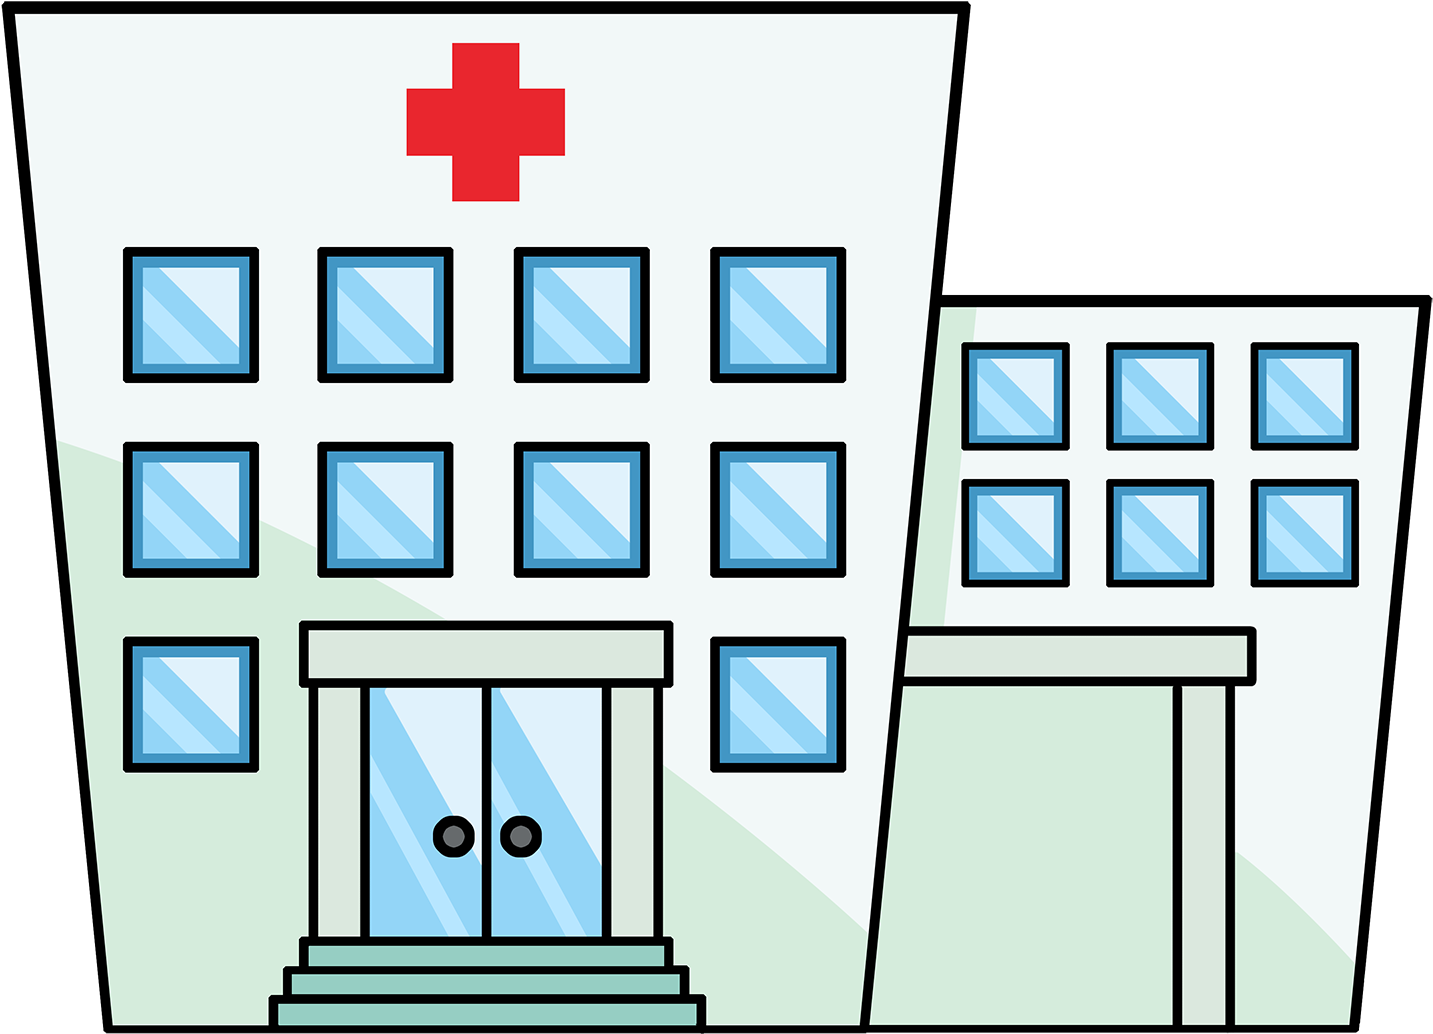 Cartoon Hospital Clipart Hospital Clipart Transparent Background 1600x1200 Png Clipart Download All hospital clip art are png format and transparent background. hospital clipart transparent background